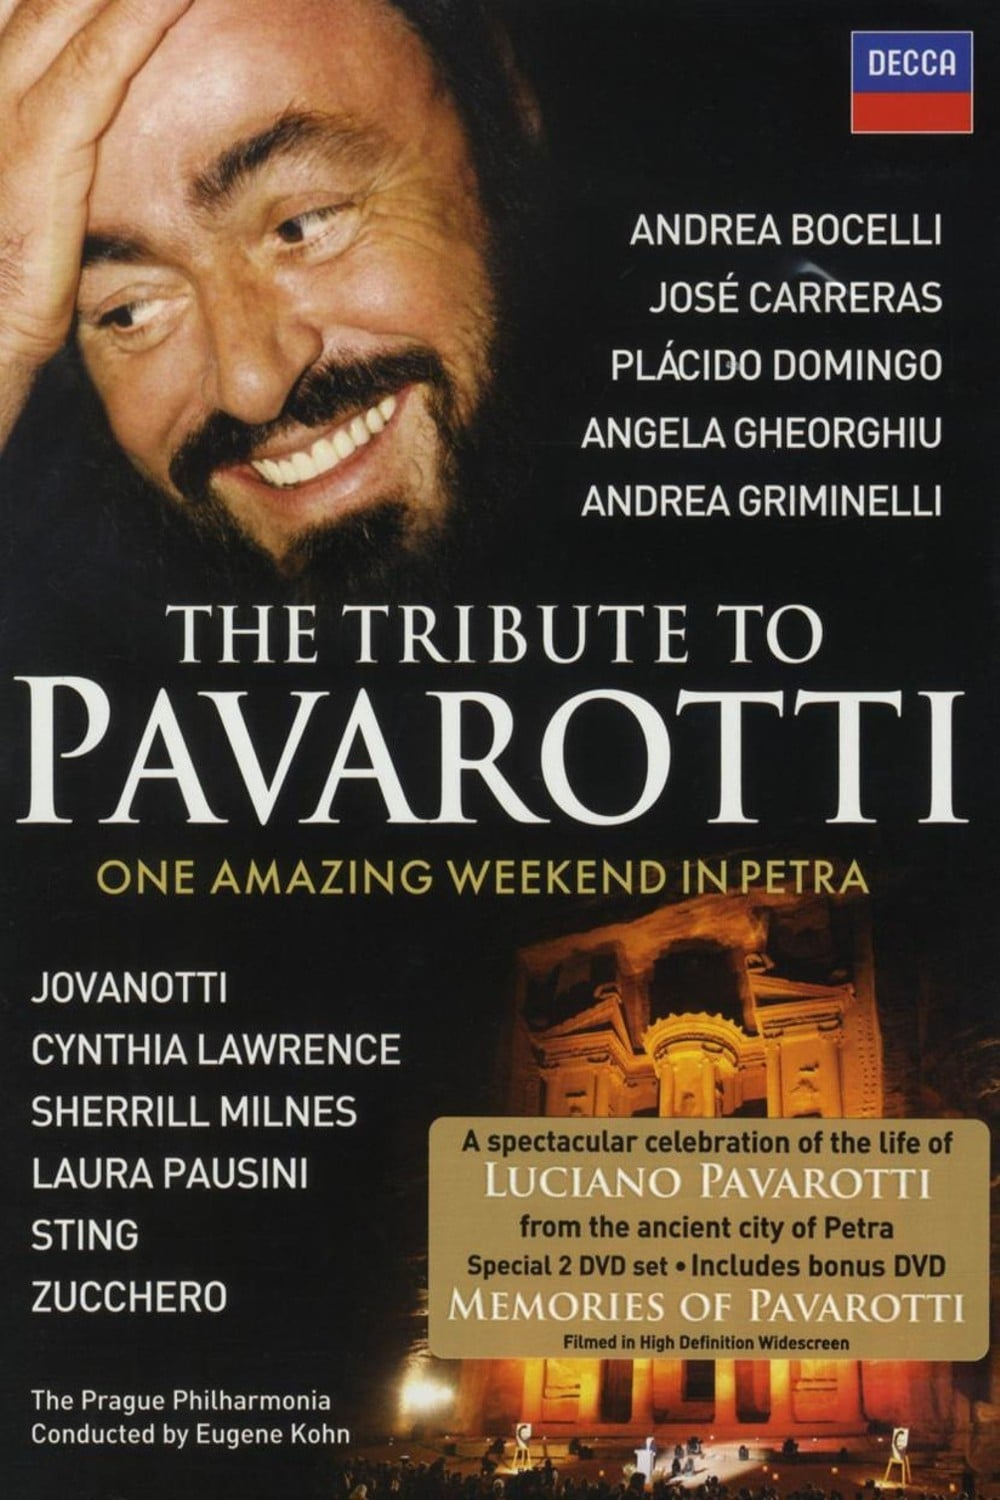 The Tribute to Pavarotti One Amazing Weekend in Petra (2009)